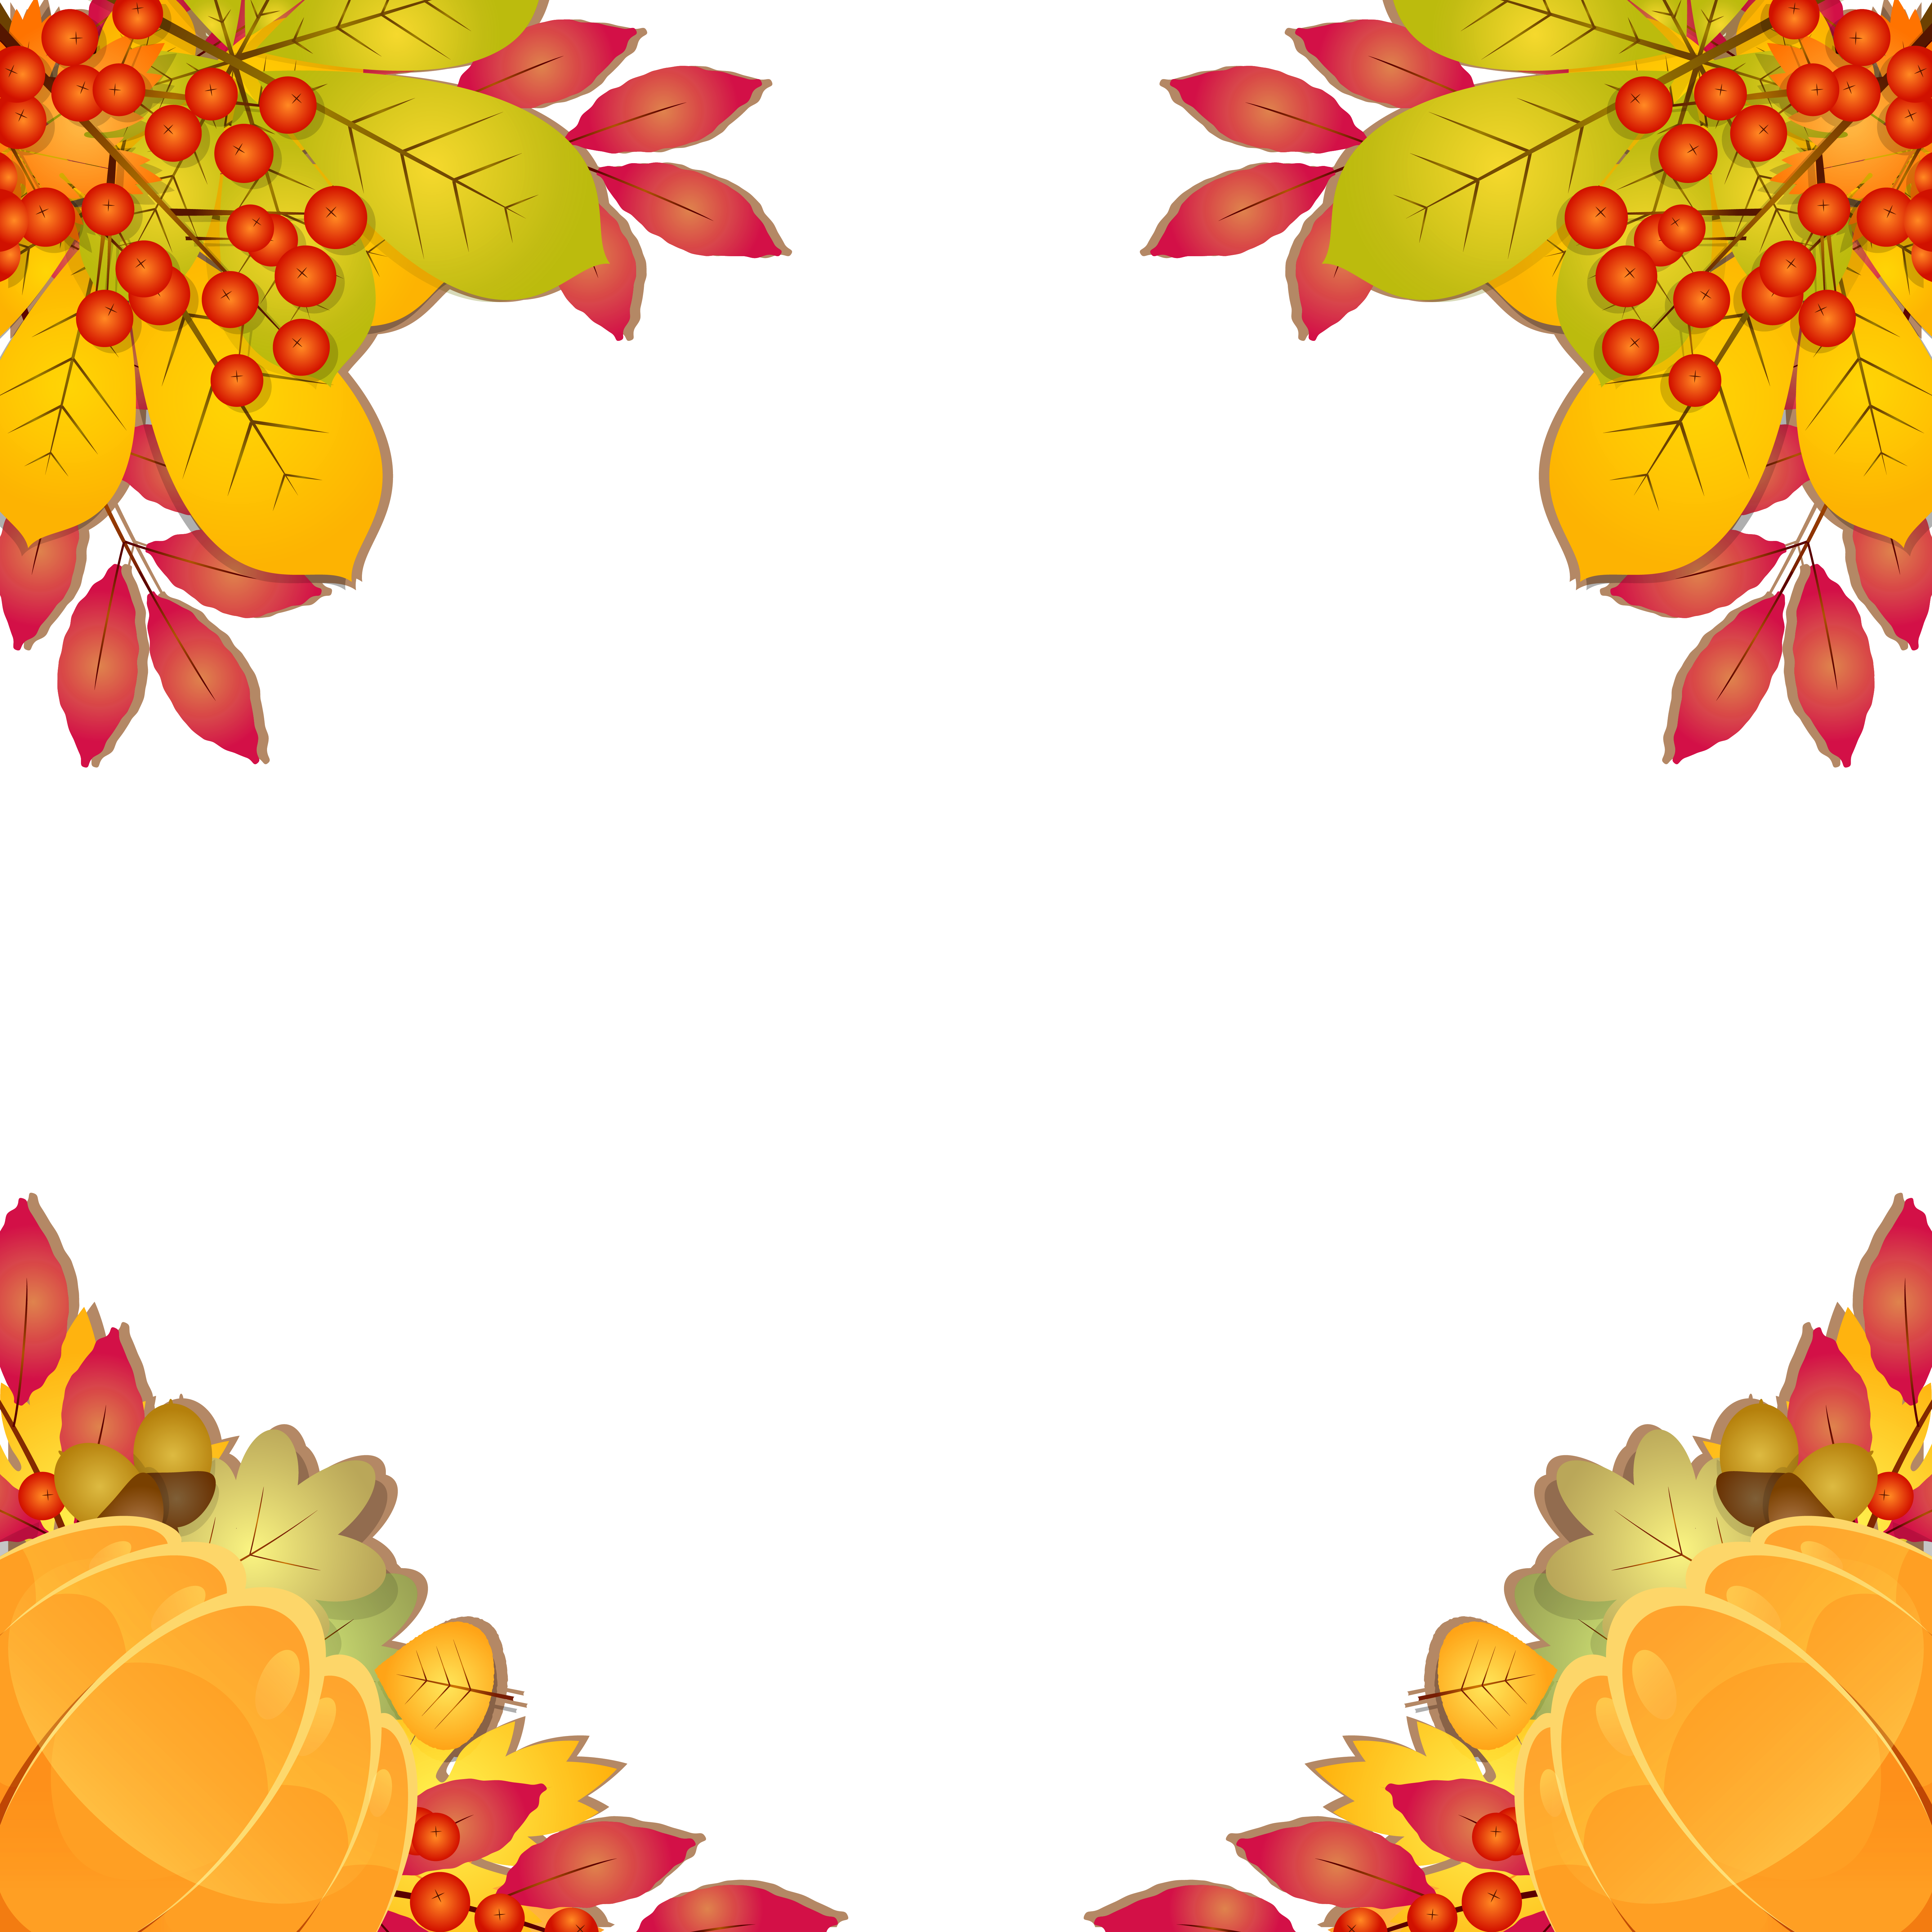 Frame clipart image gallery. Fall border png